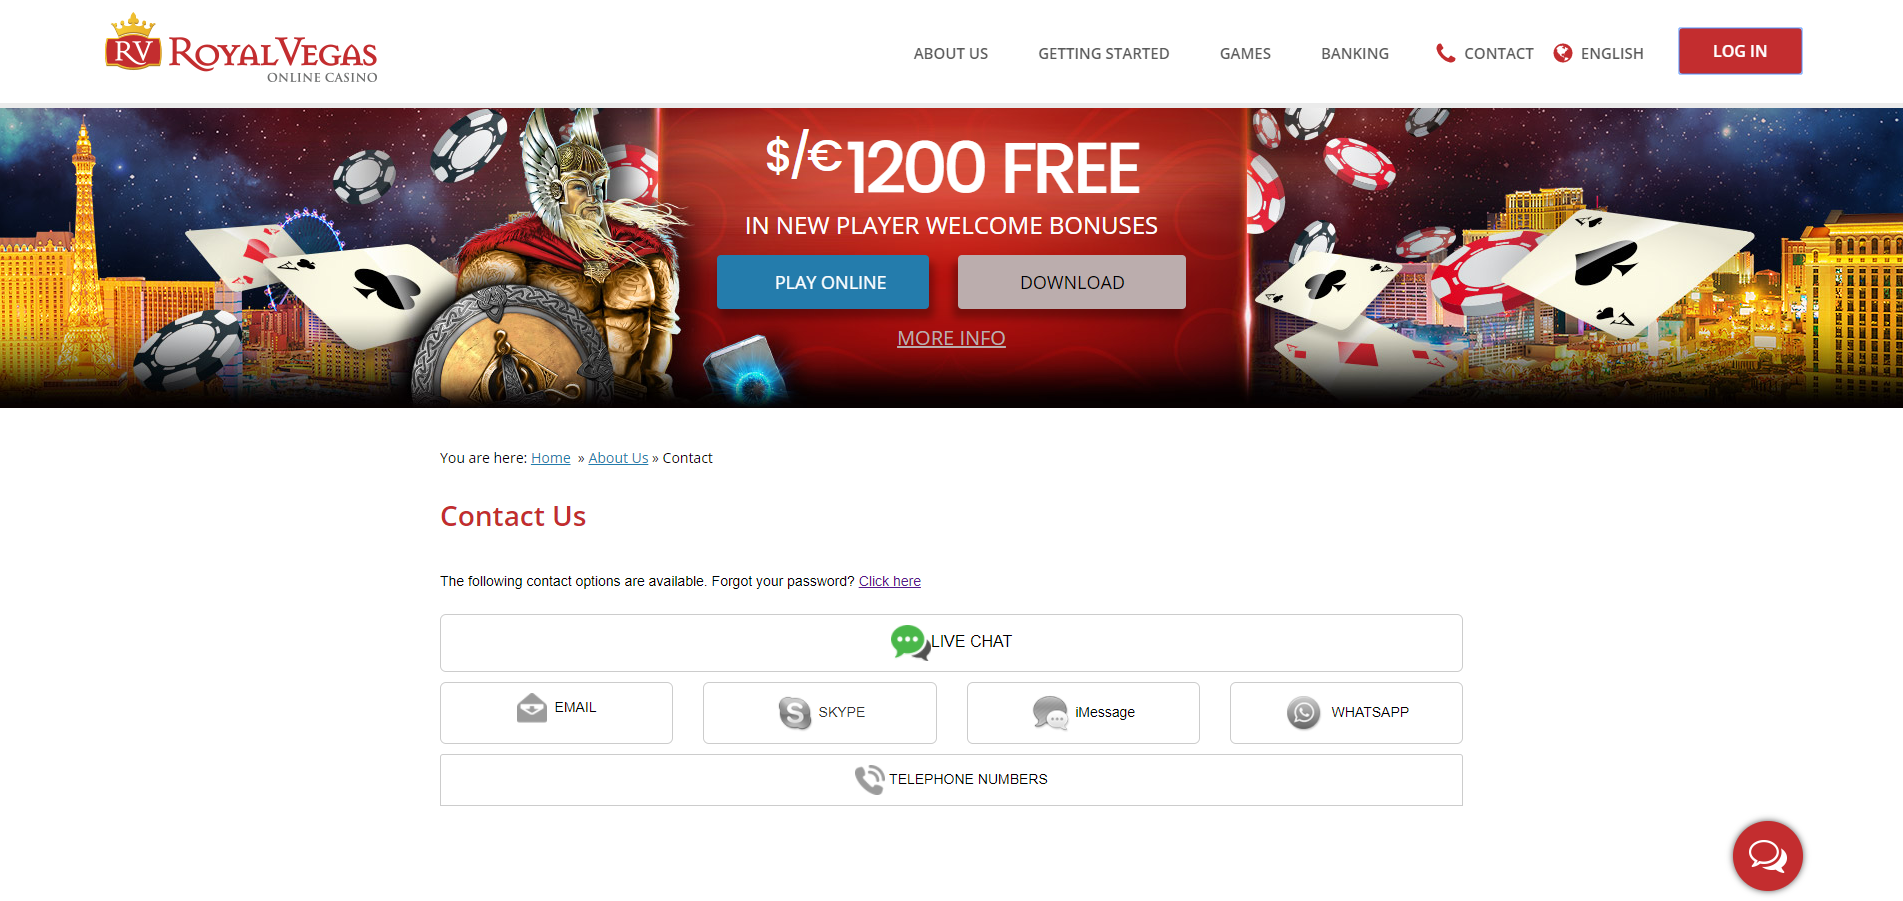 SlotsMagic Casino Online Review With Promotions & Bonuses